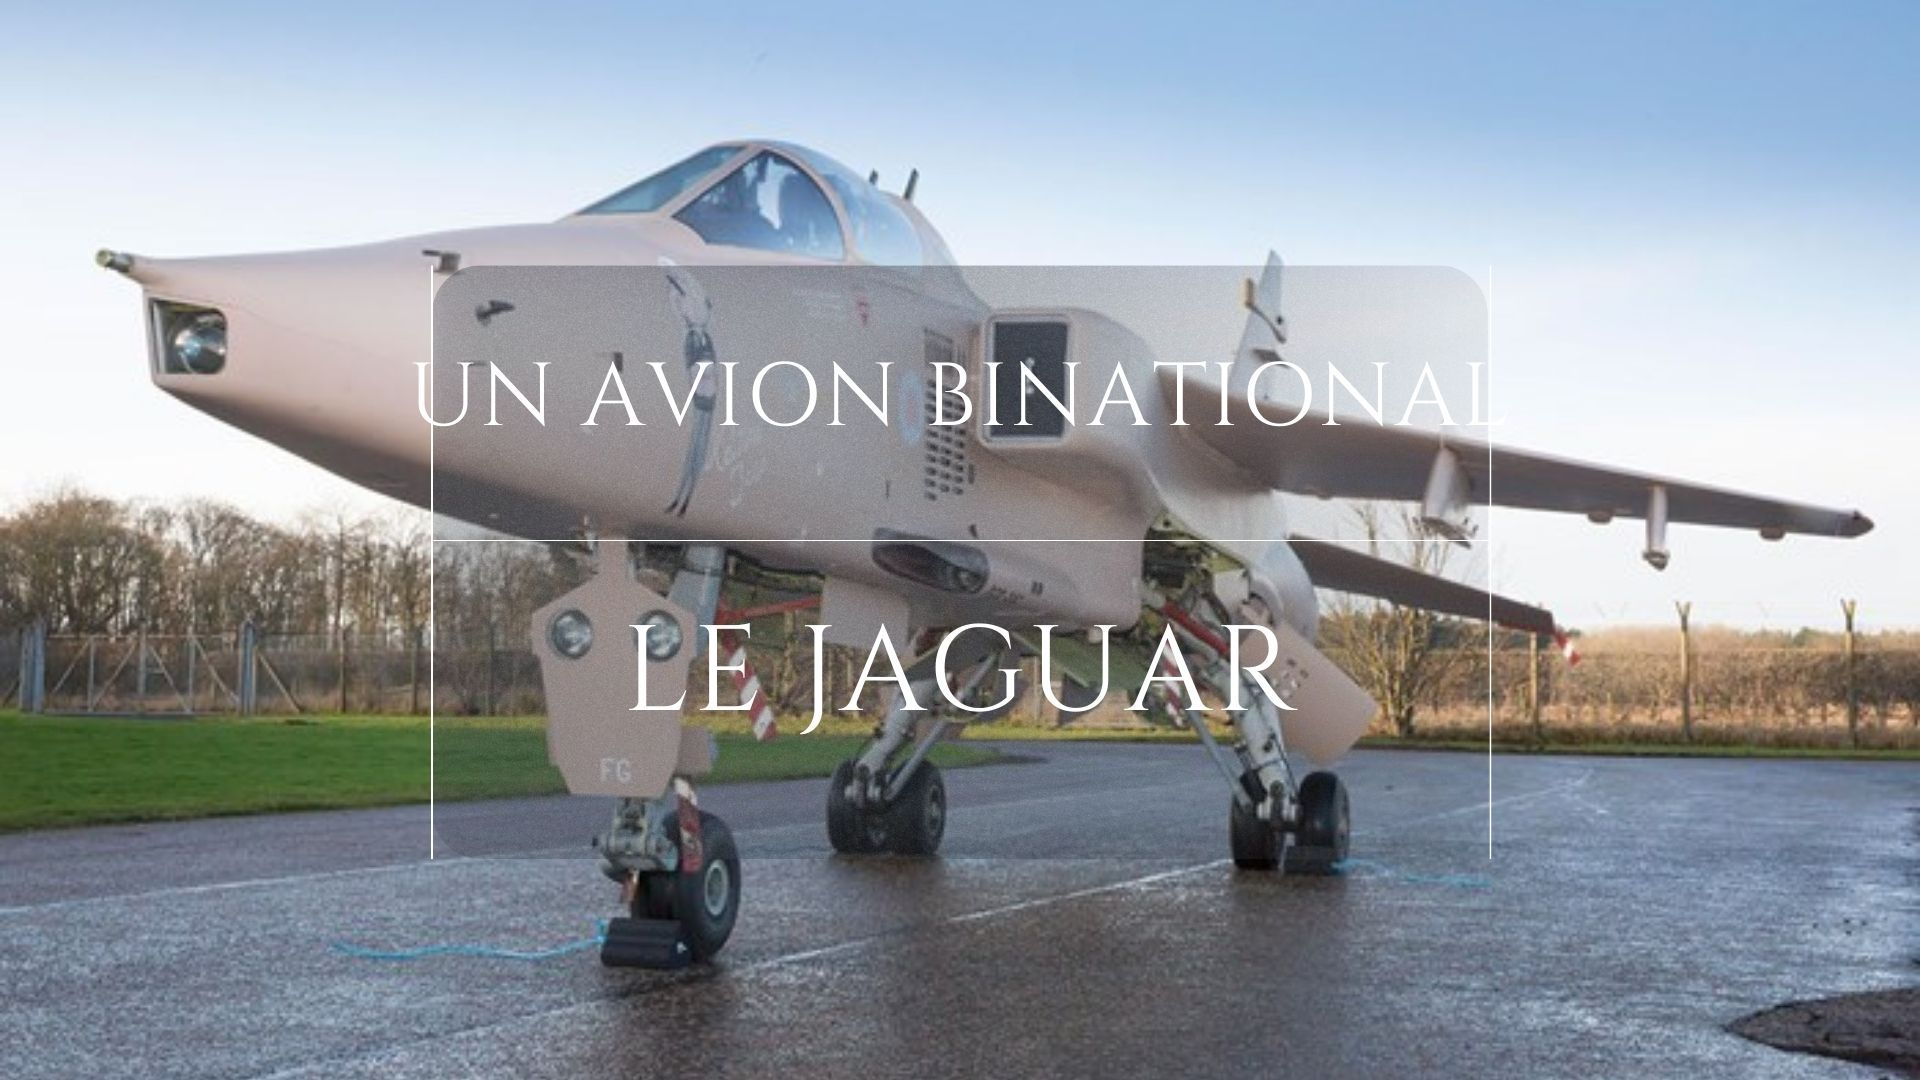 Avion binational, le jaguar